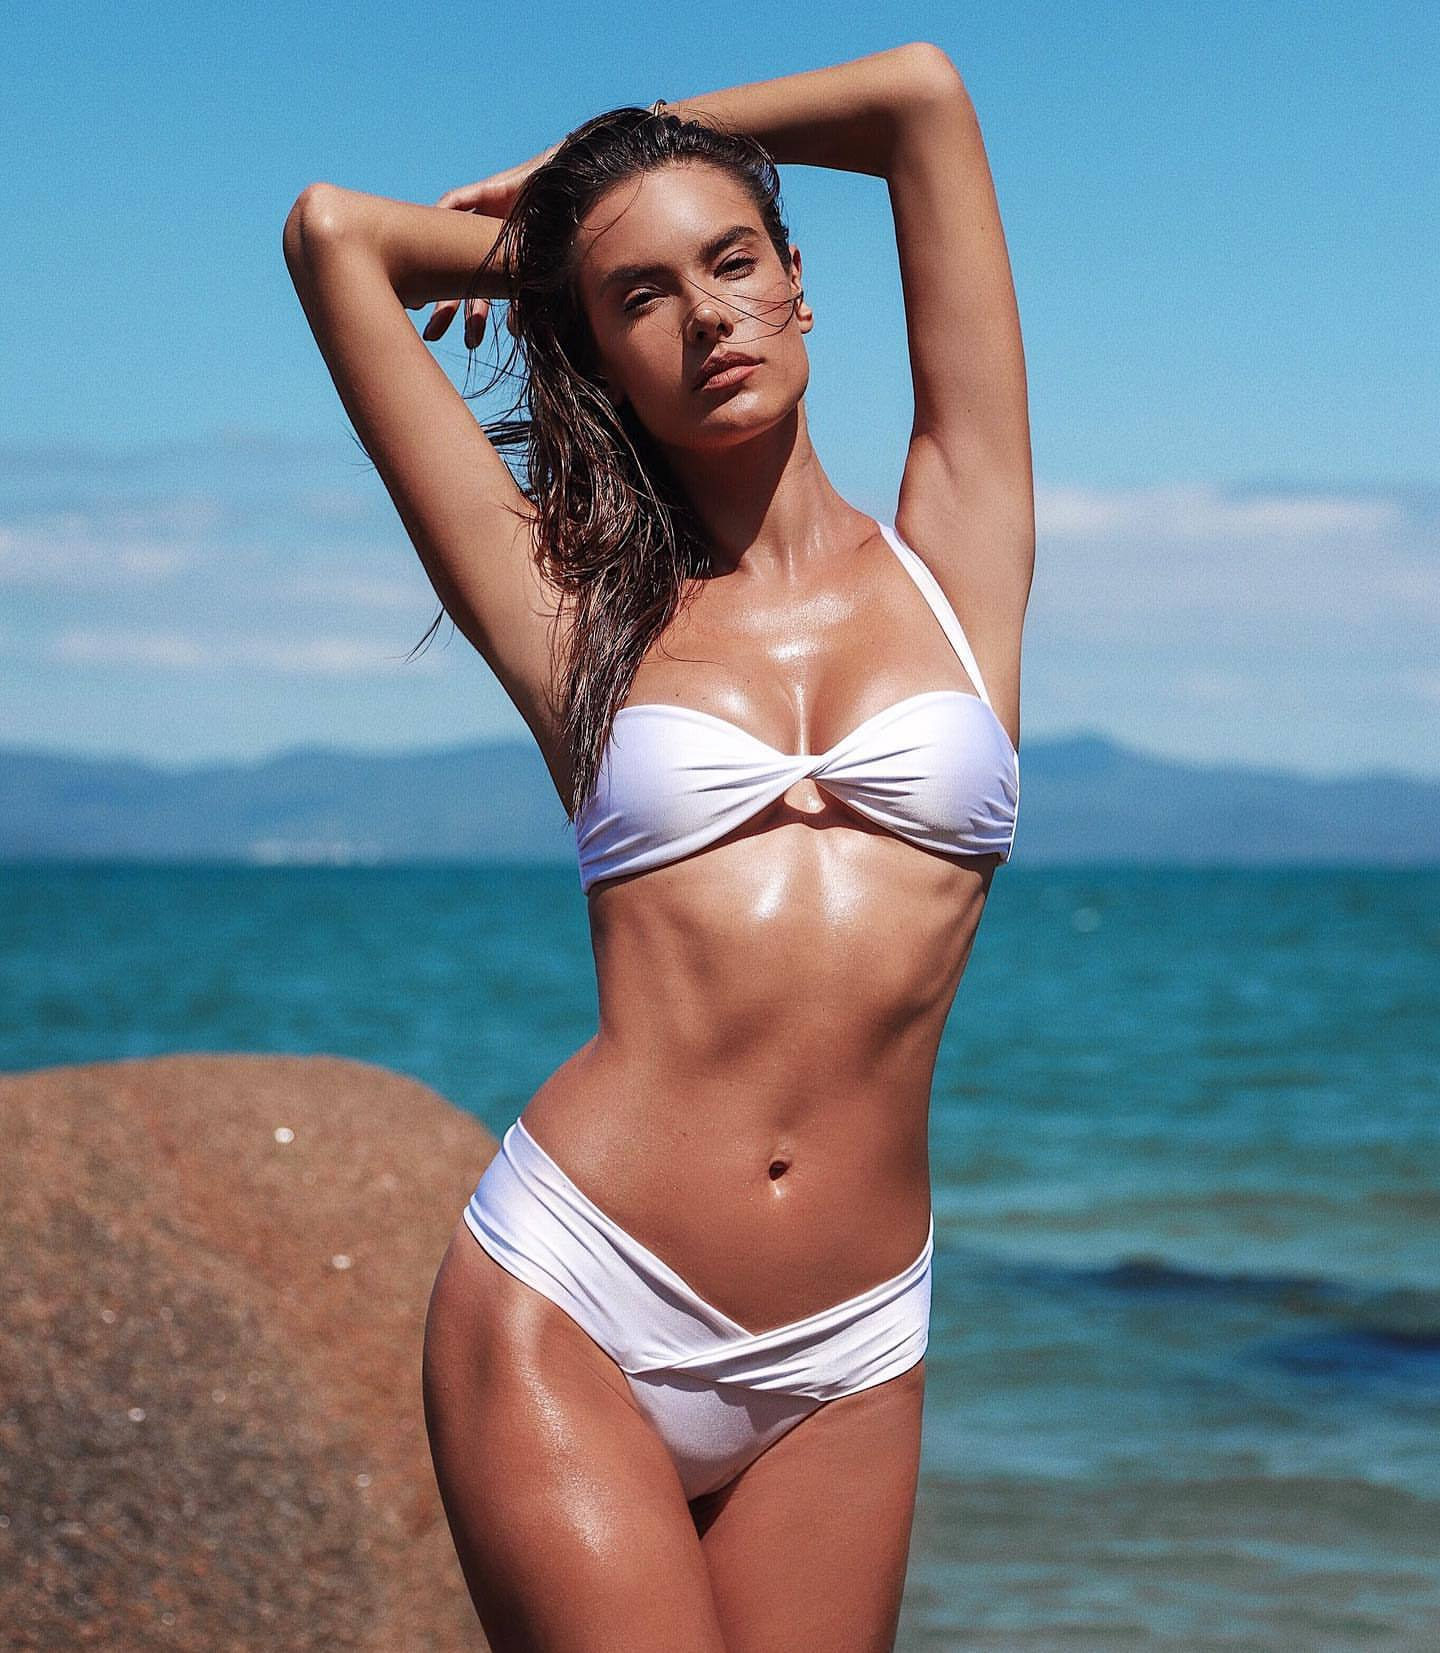 Alessandra Ambrosio Hot Body In White Bikini